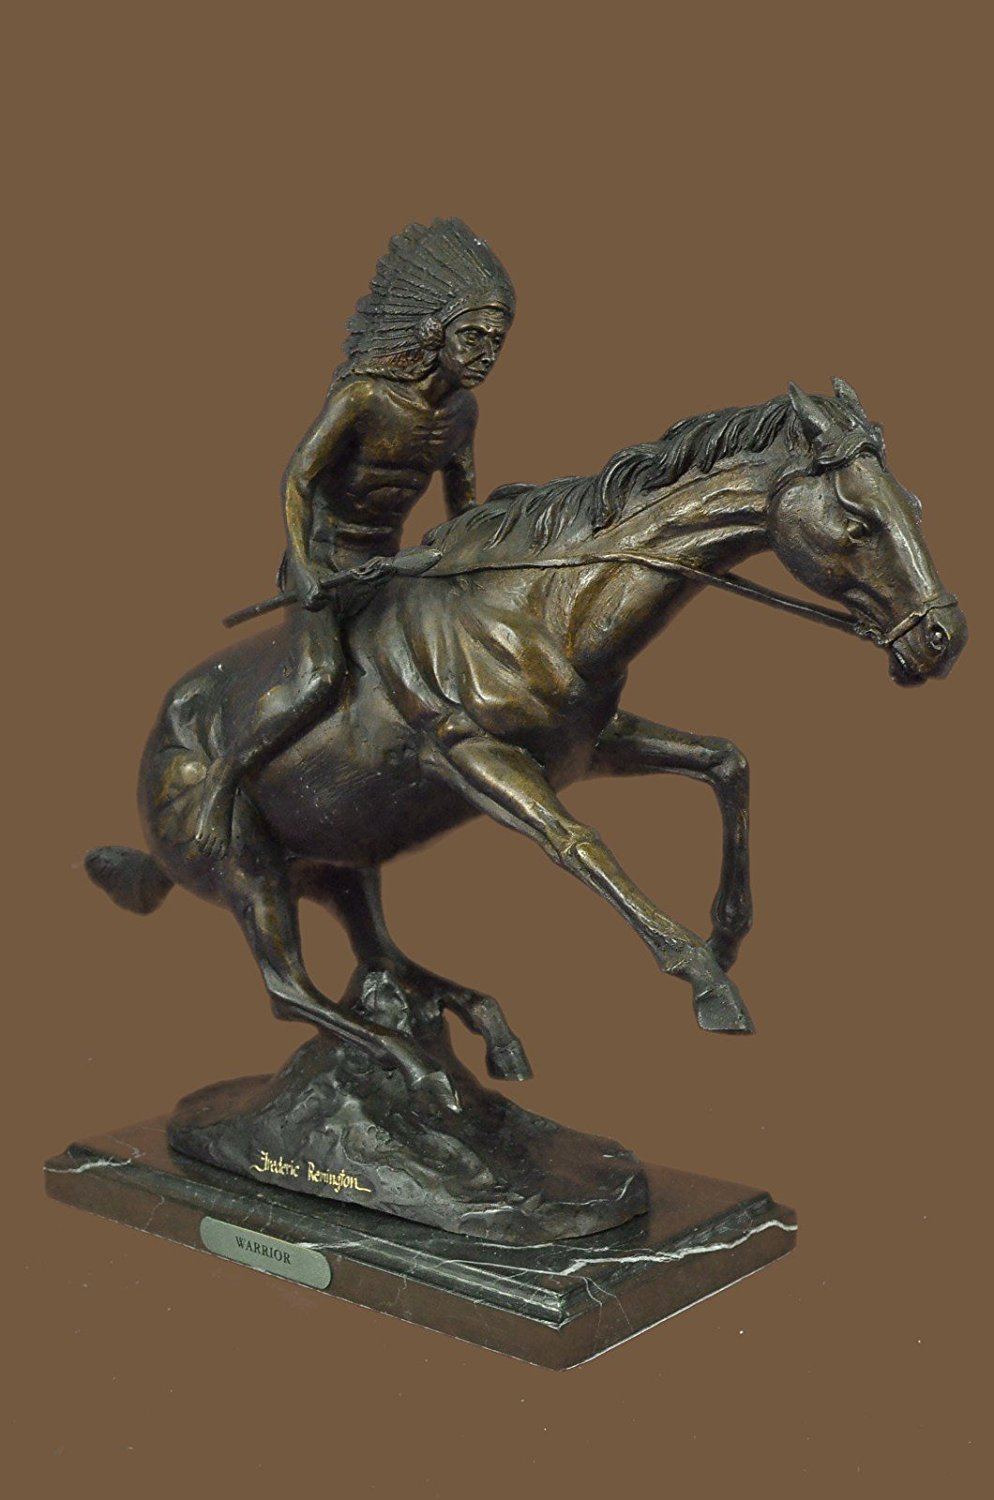 Buy Handmade European Bronze Sculpture Frederic Remington Native American Indian Horse 20 Gift 1x 57809 Bronze Sculpture Statues Figurine Nude Office Home Decor Collectibles Sale Deal Gift In Cheap Price On Alibaba Com